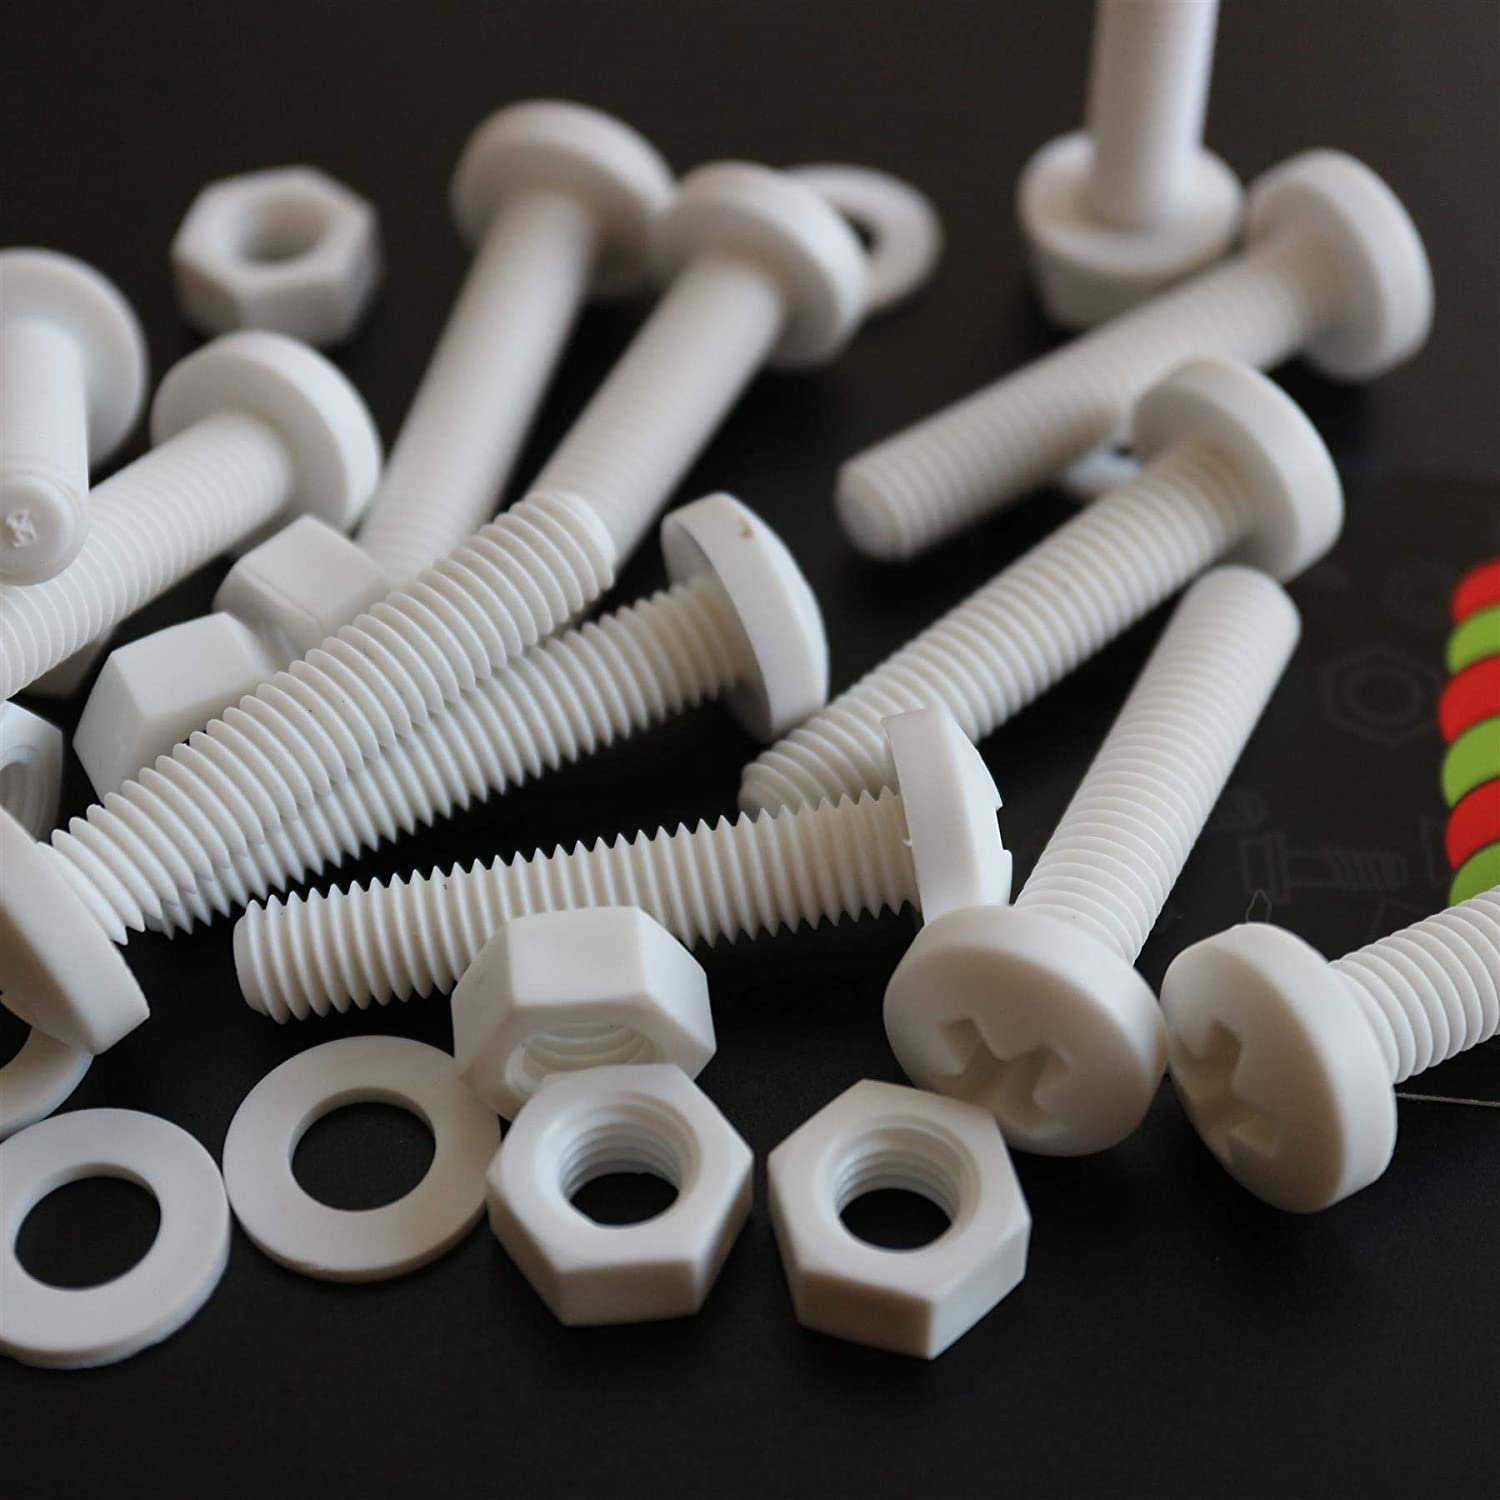 Plastic Nuts and Bolts Acrylic Chemical Resistant M8 x 40mm PP 20 x White Philips Pan Head Screws Polypropylene 5//16 x 1-37//64 Water Resistant Anti-Corrosion Washers